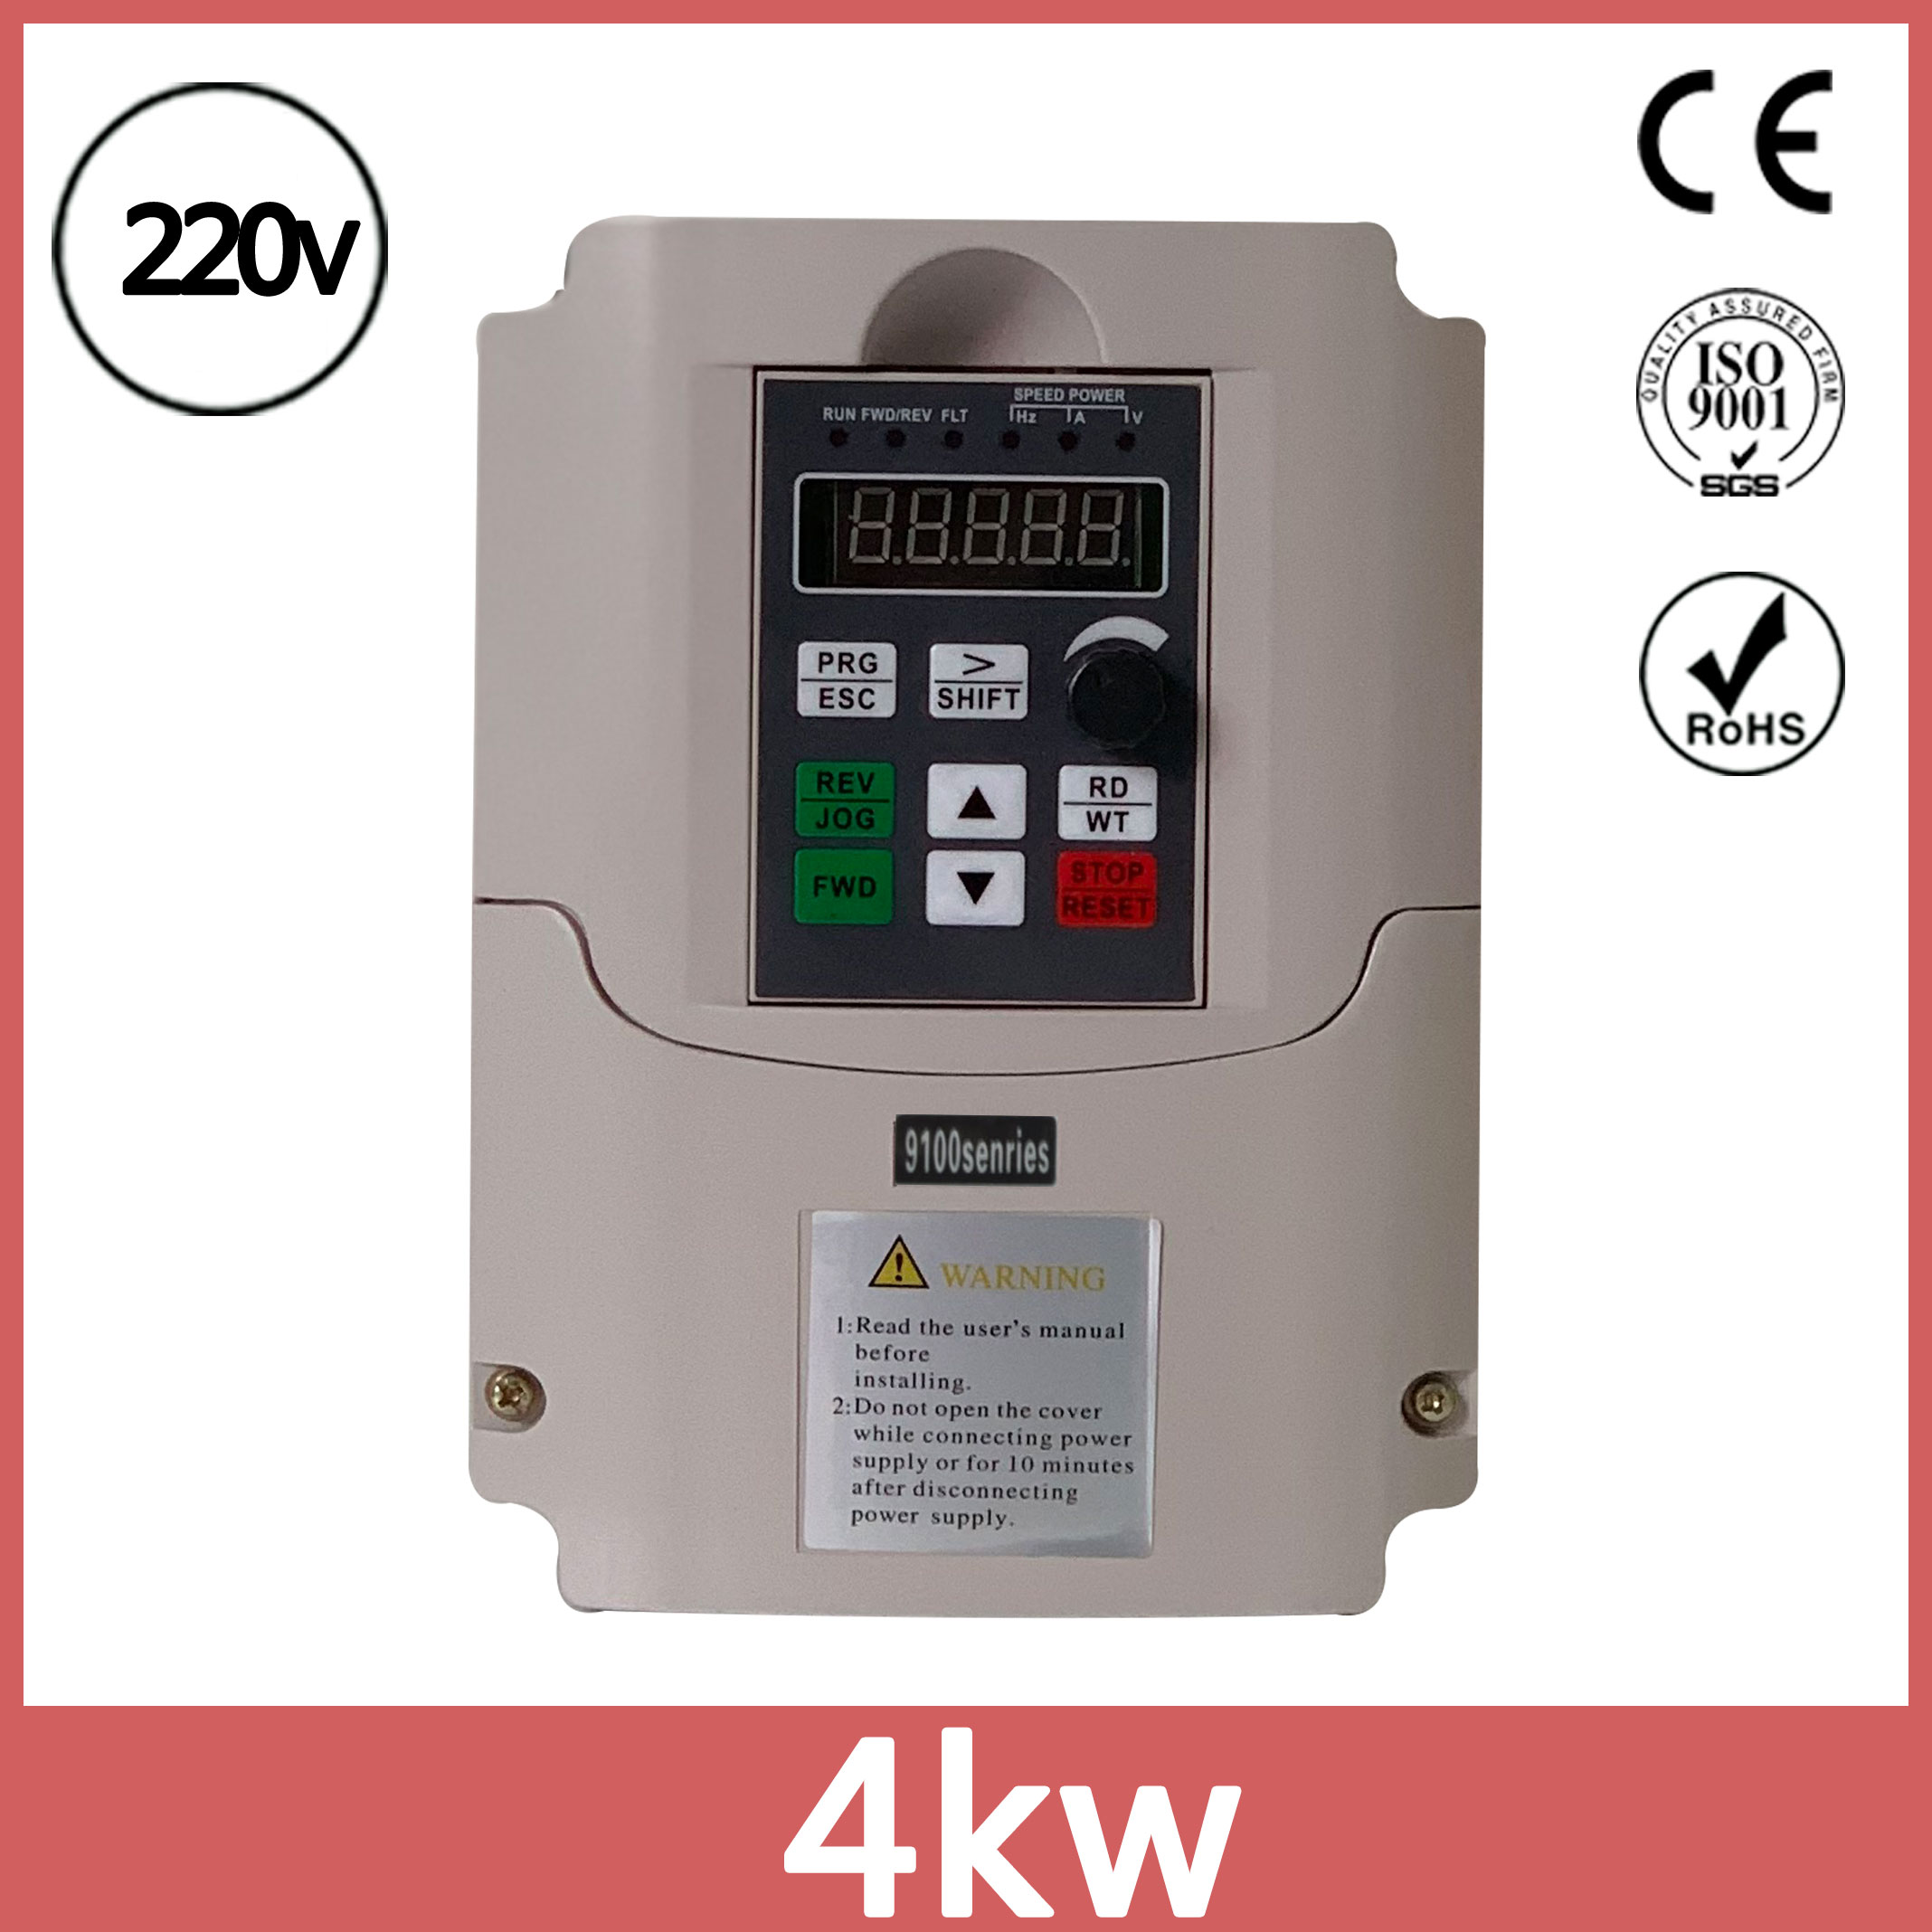 For Russian NF 220v 1.5kw/2.2/4kw 1 phase input and 3 phase output frequency converter/ ac motor drive/ VSD/ VFD/ 50HZ Inverter